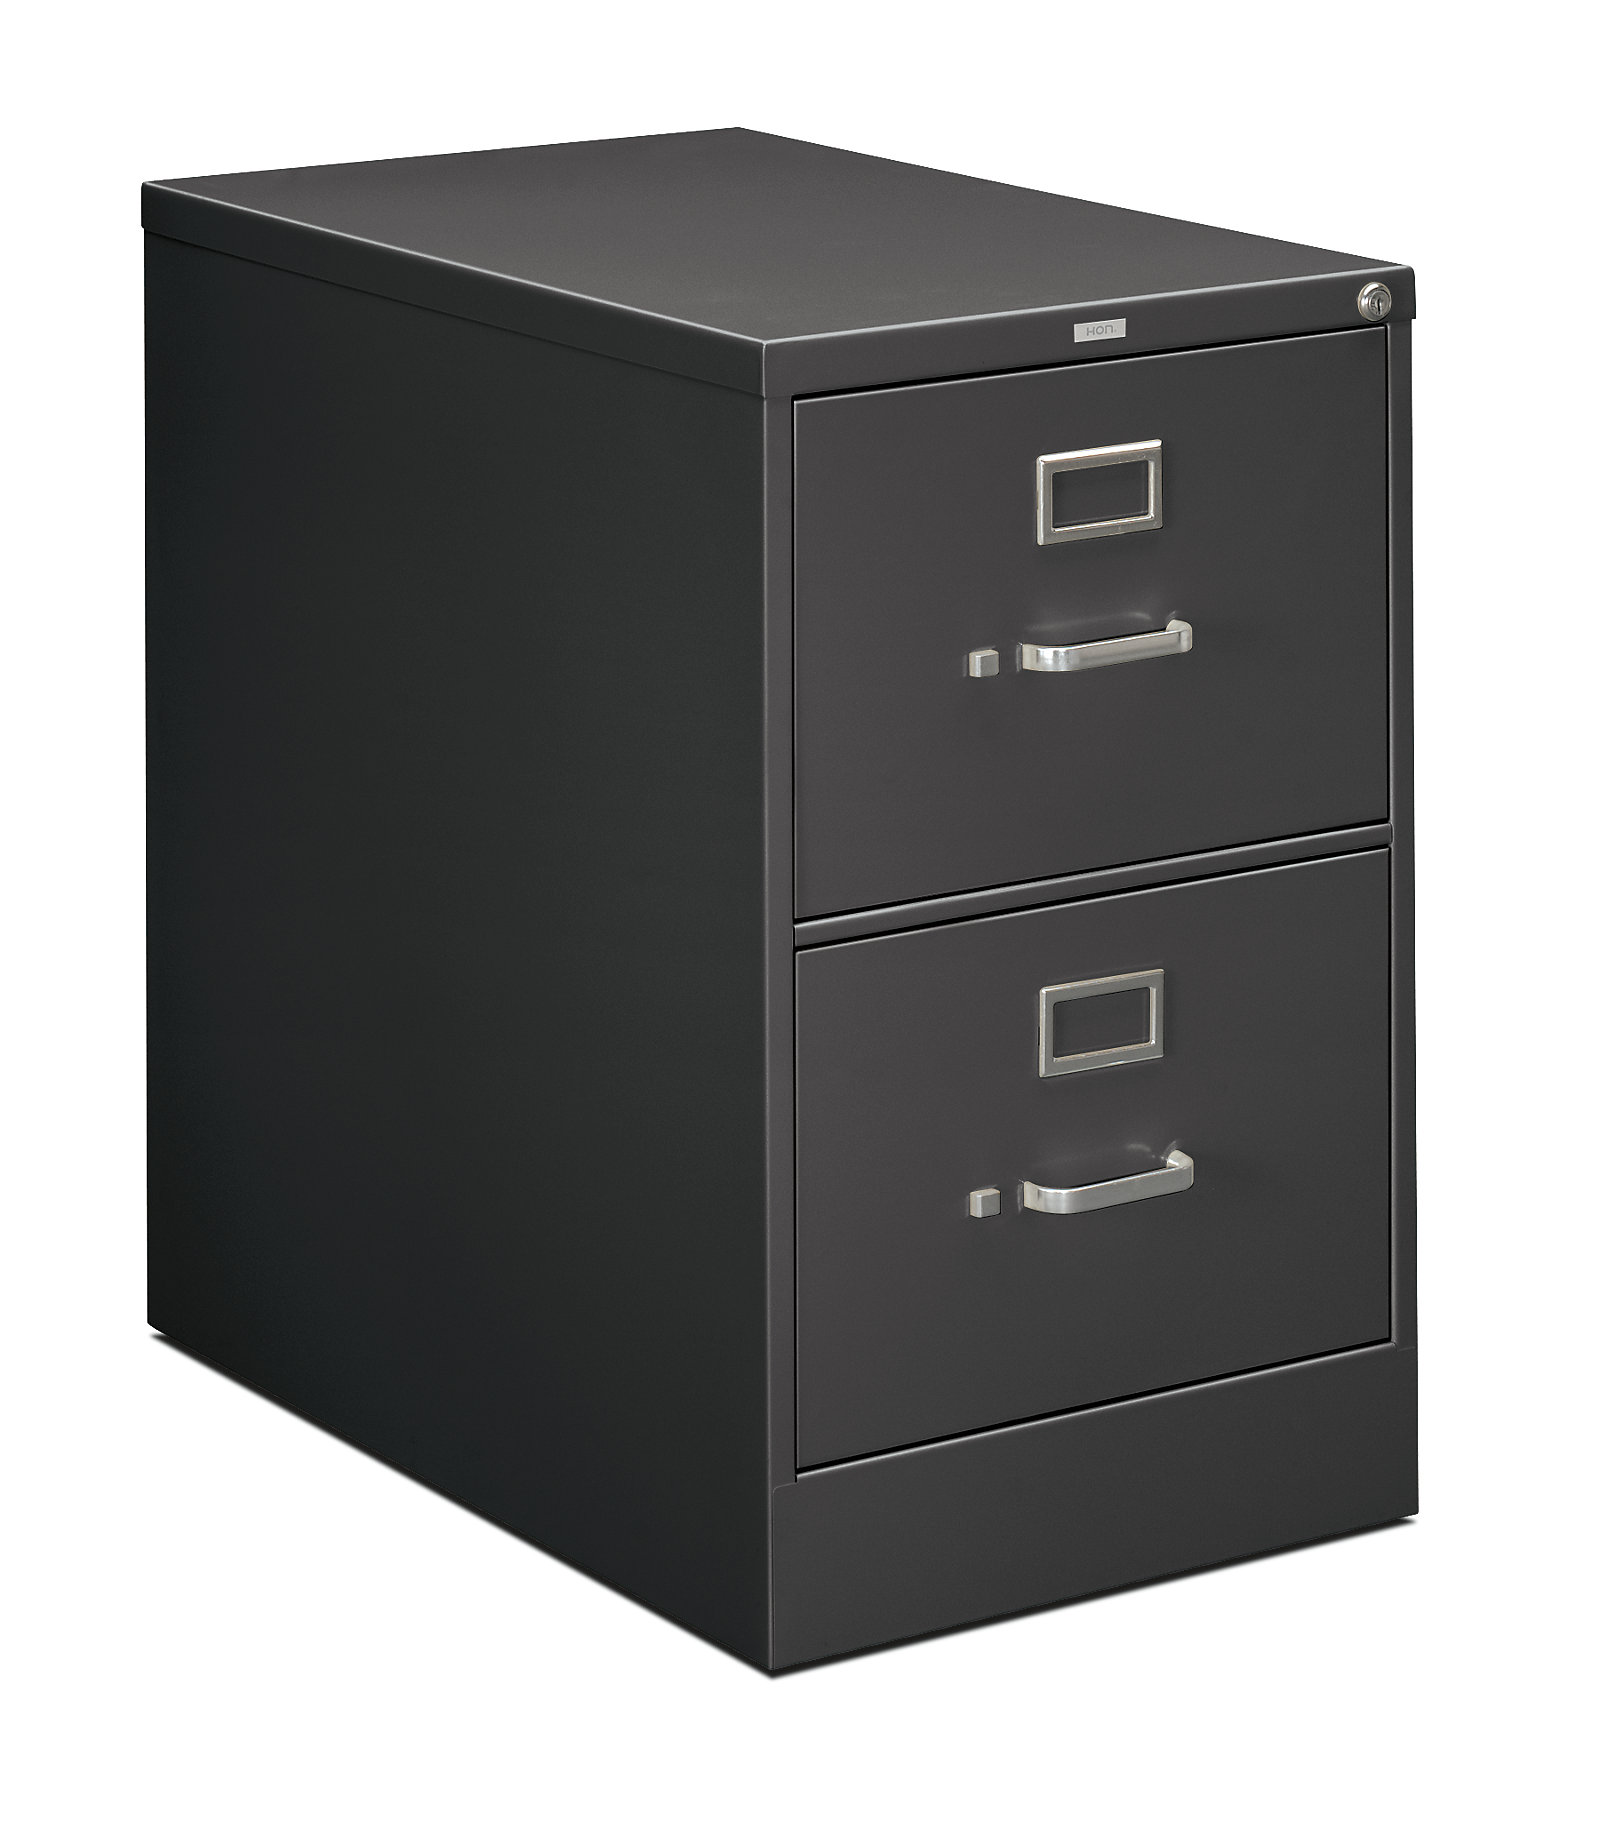 p front black view hon side furniture cabinet files file office vertical drawer storage